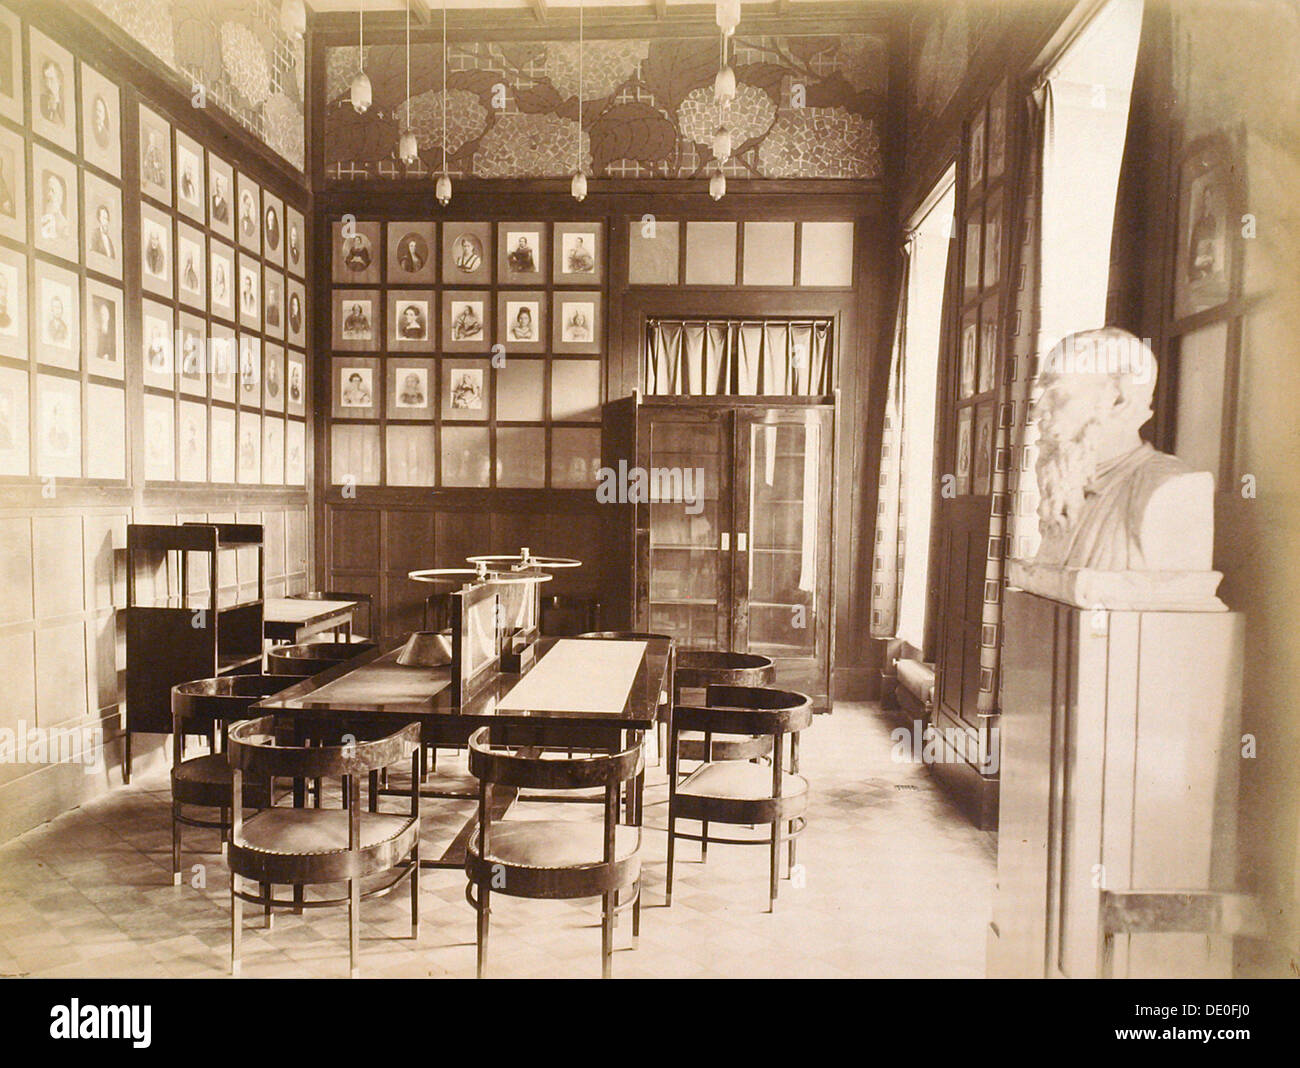 Literature room, House of the Association of Literature and Arts, Russia, 1900s. - Stock Image